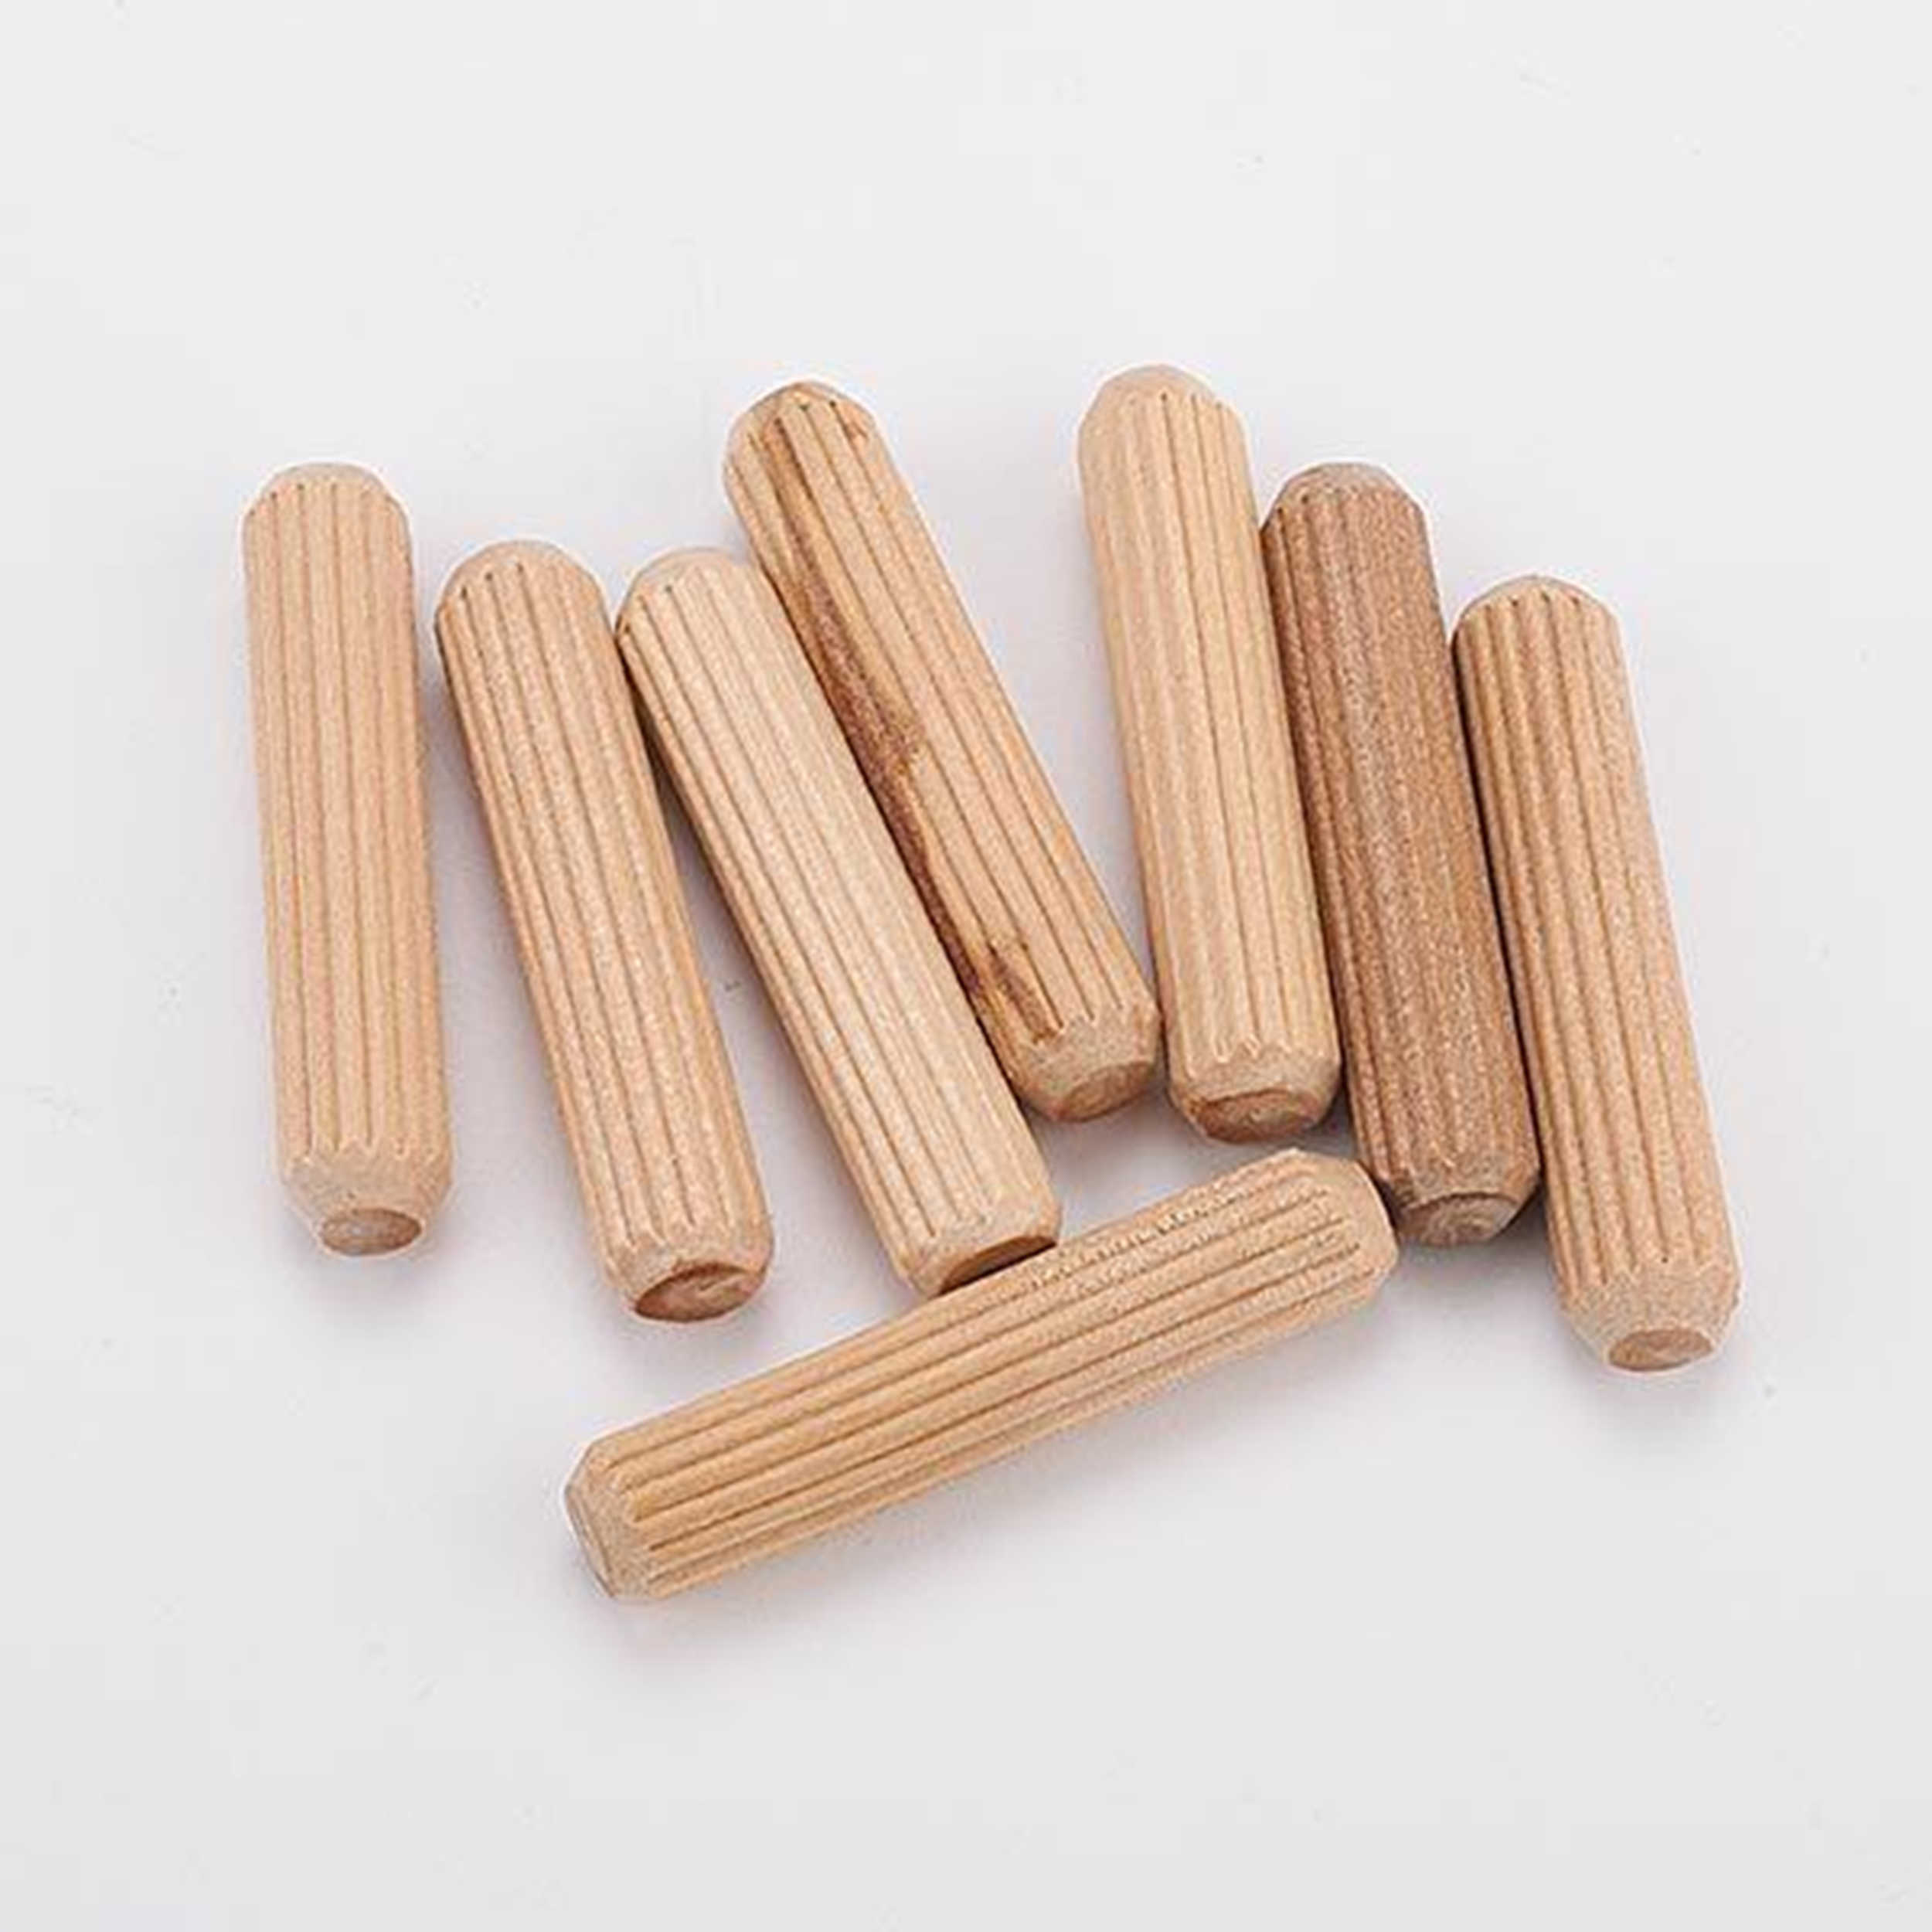 MILESCRAFT 45-Count 5/16-Inch Fluted Dowel Pins